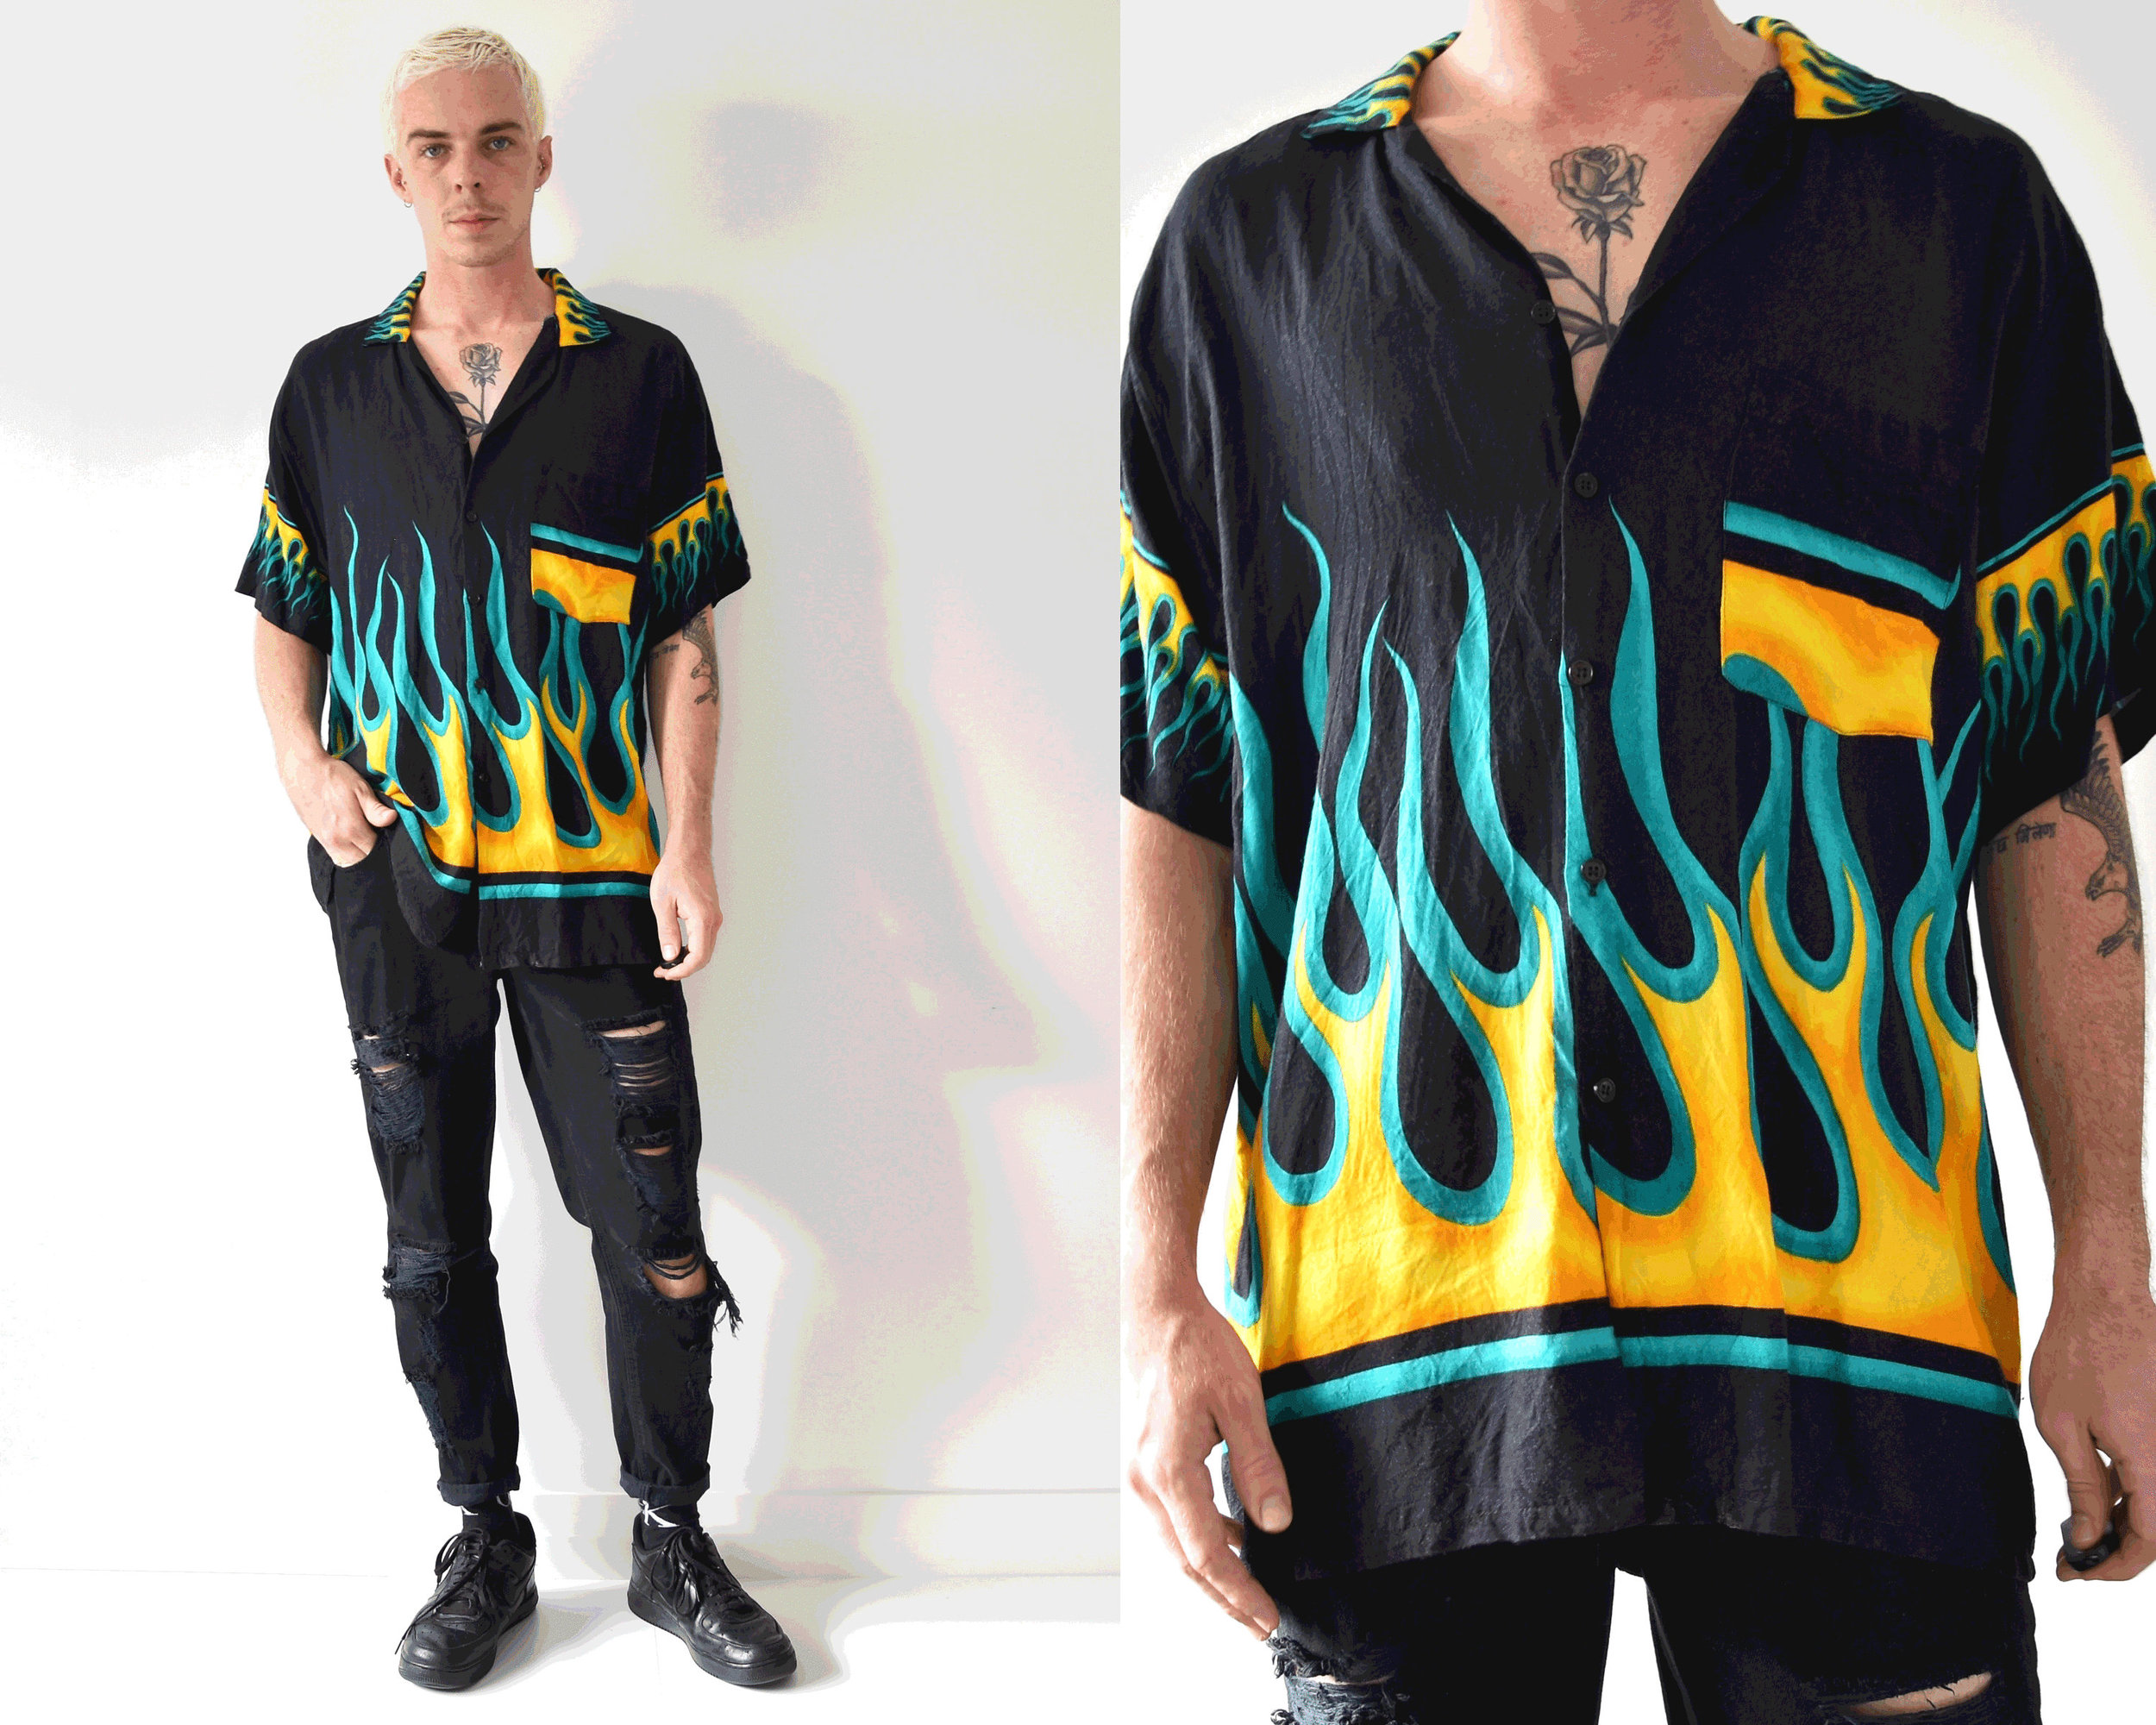 90s Yellow Flame Button Up Shirt from Cheney Ryan Apparel